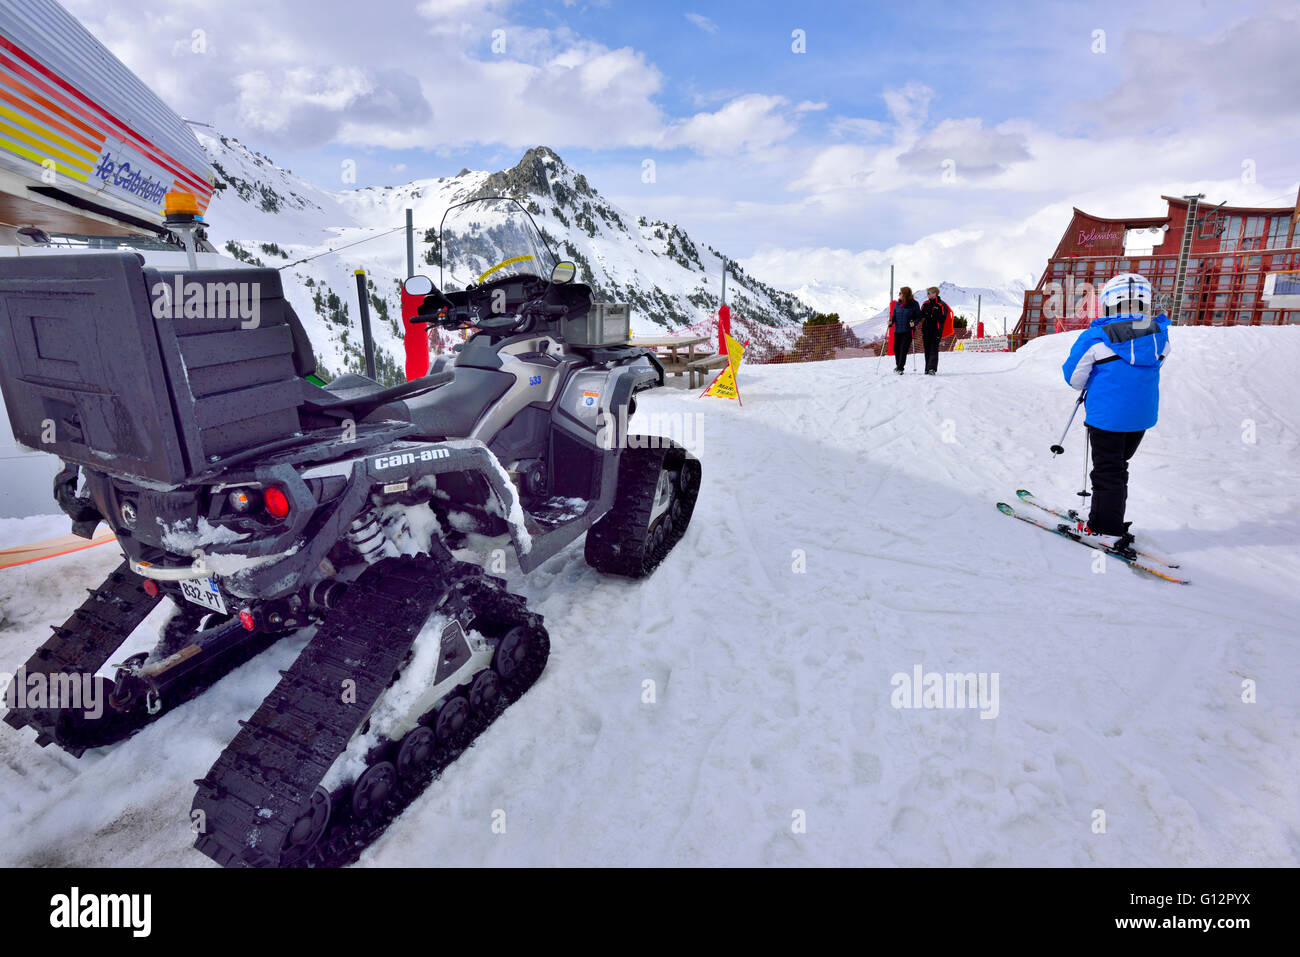 Arctic Cat Outlander Apache 360 tracked working snowmobile parked in Les Arcs in French Alps - Stock Image